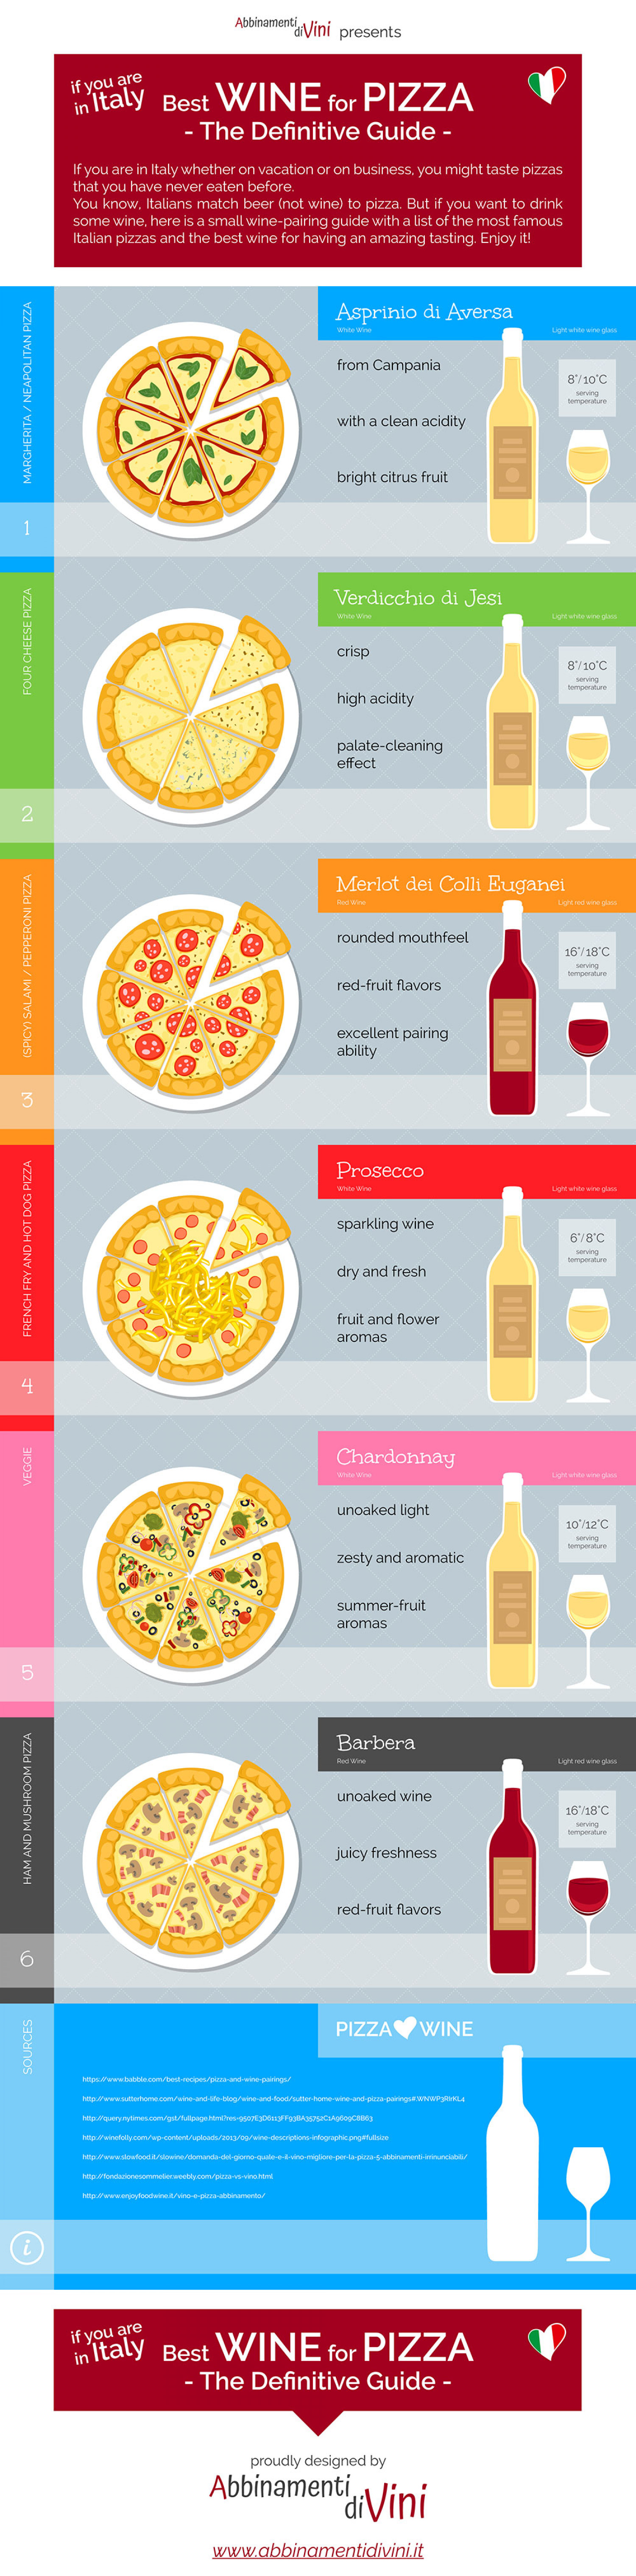 Best Wine for Pizza - The Definitive Guide Infographic